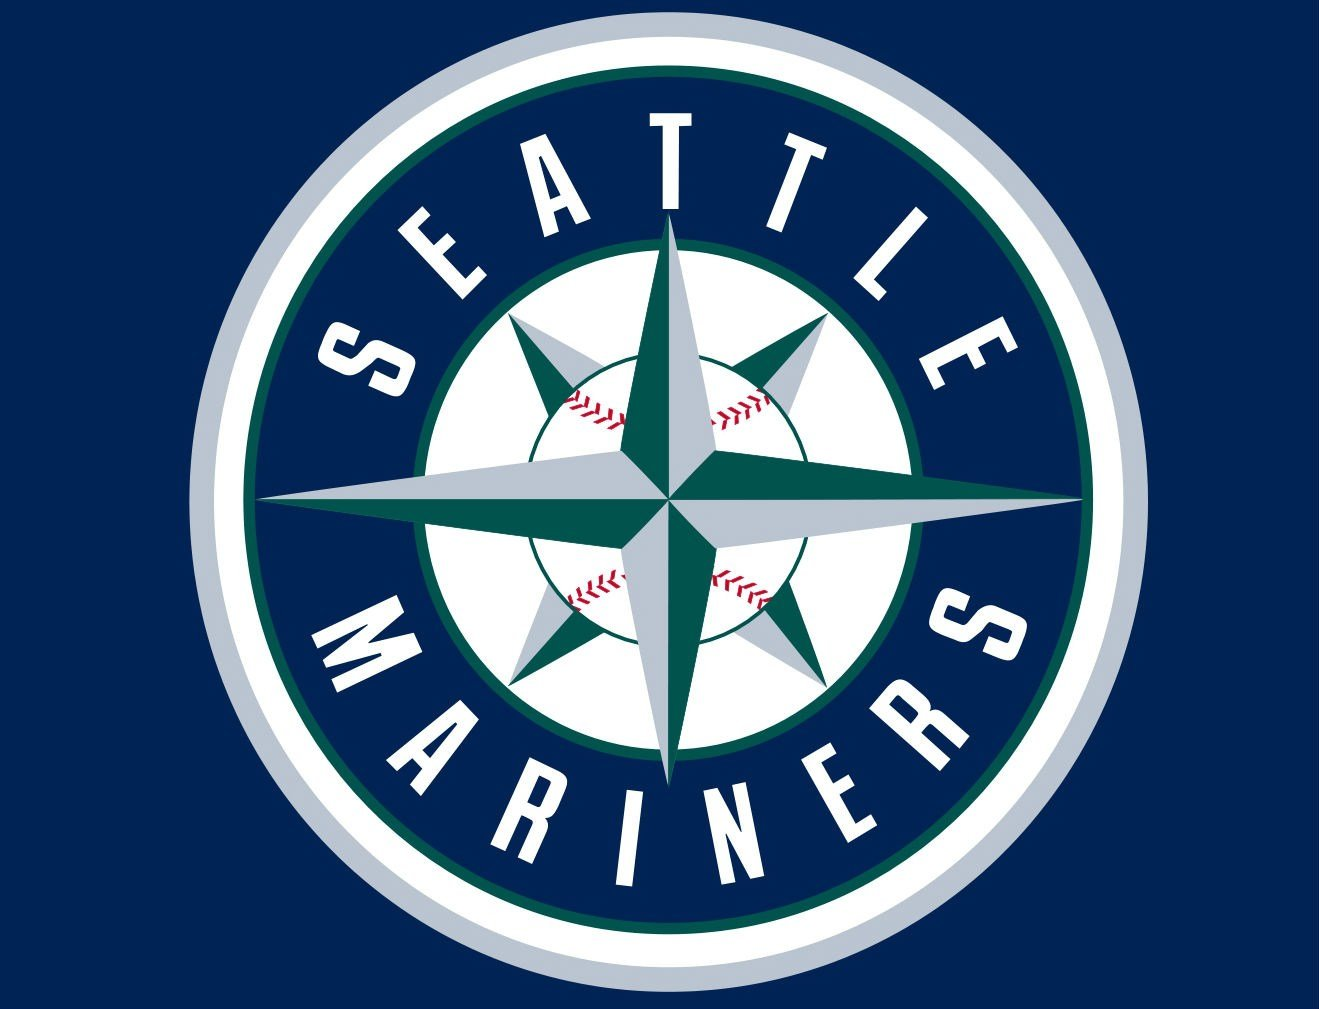 The Athletics beat the Seattle Mariners 4-3 on Saturday.